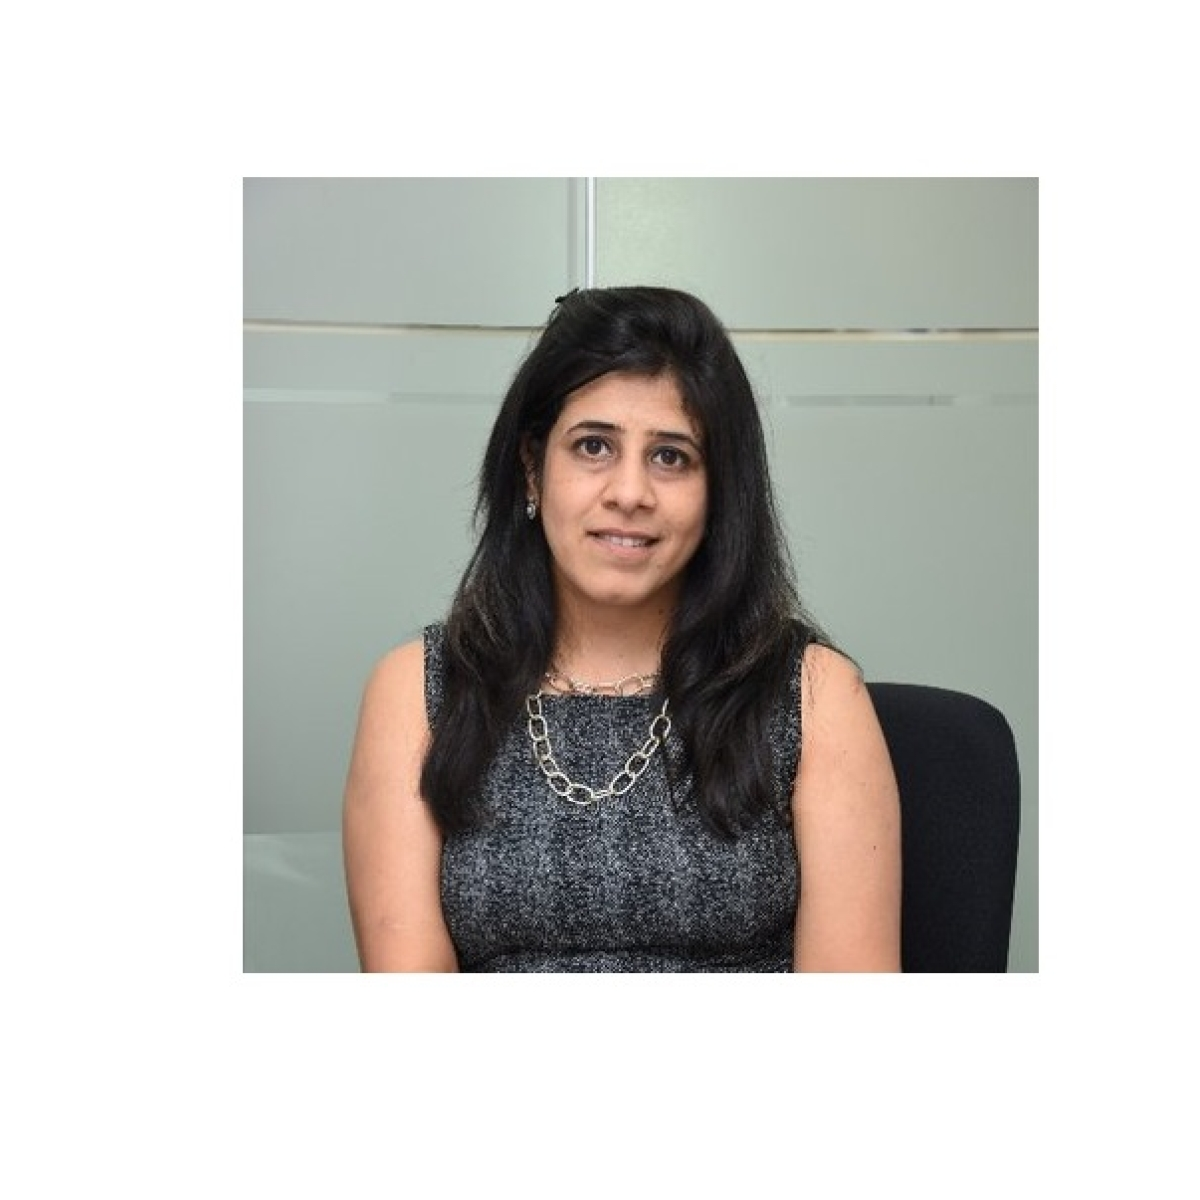 Lupin appoints Shweta Munjal as Vice President and Head of Corporate Communications